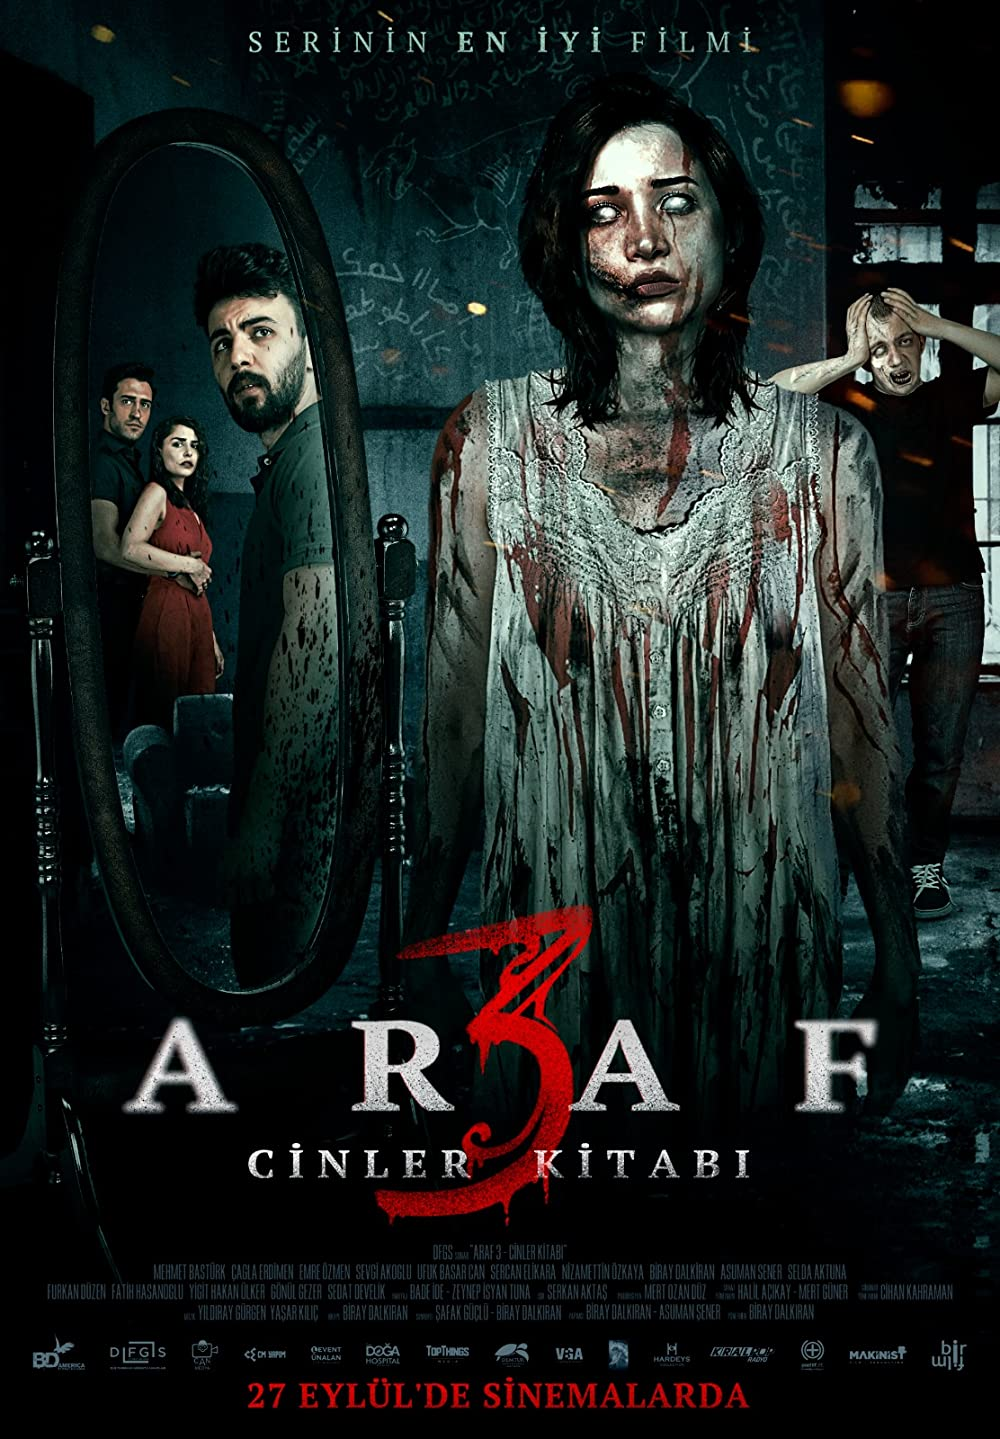 Araf 3: Cinler Kitabi 2019 Hindi Dual Audio 720p HDRip ESubs 700MB x264 AAC